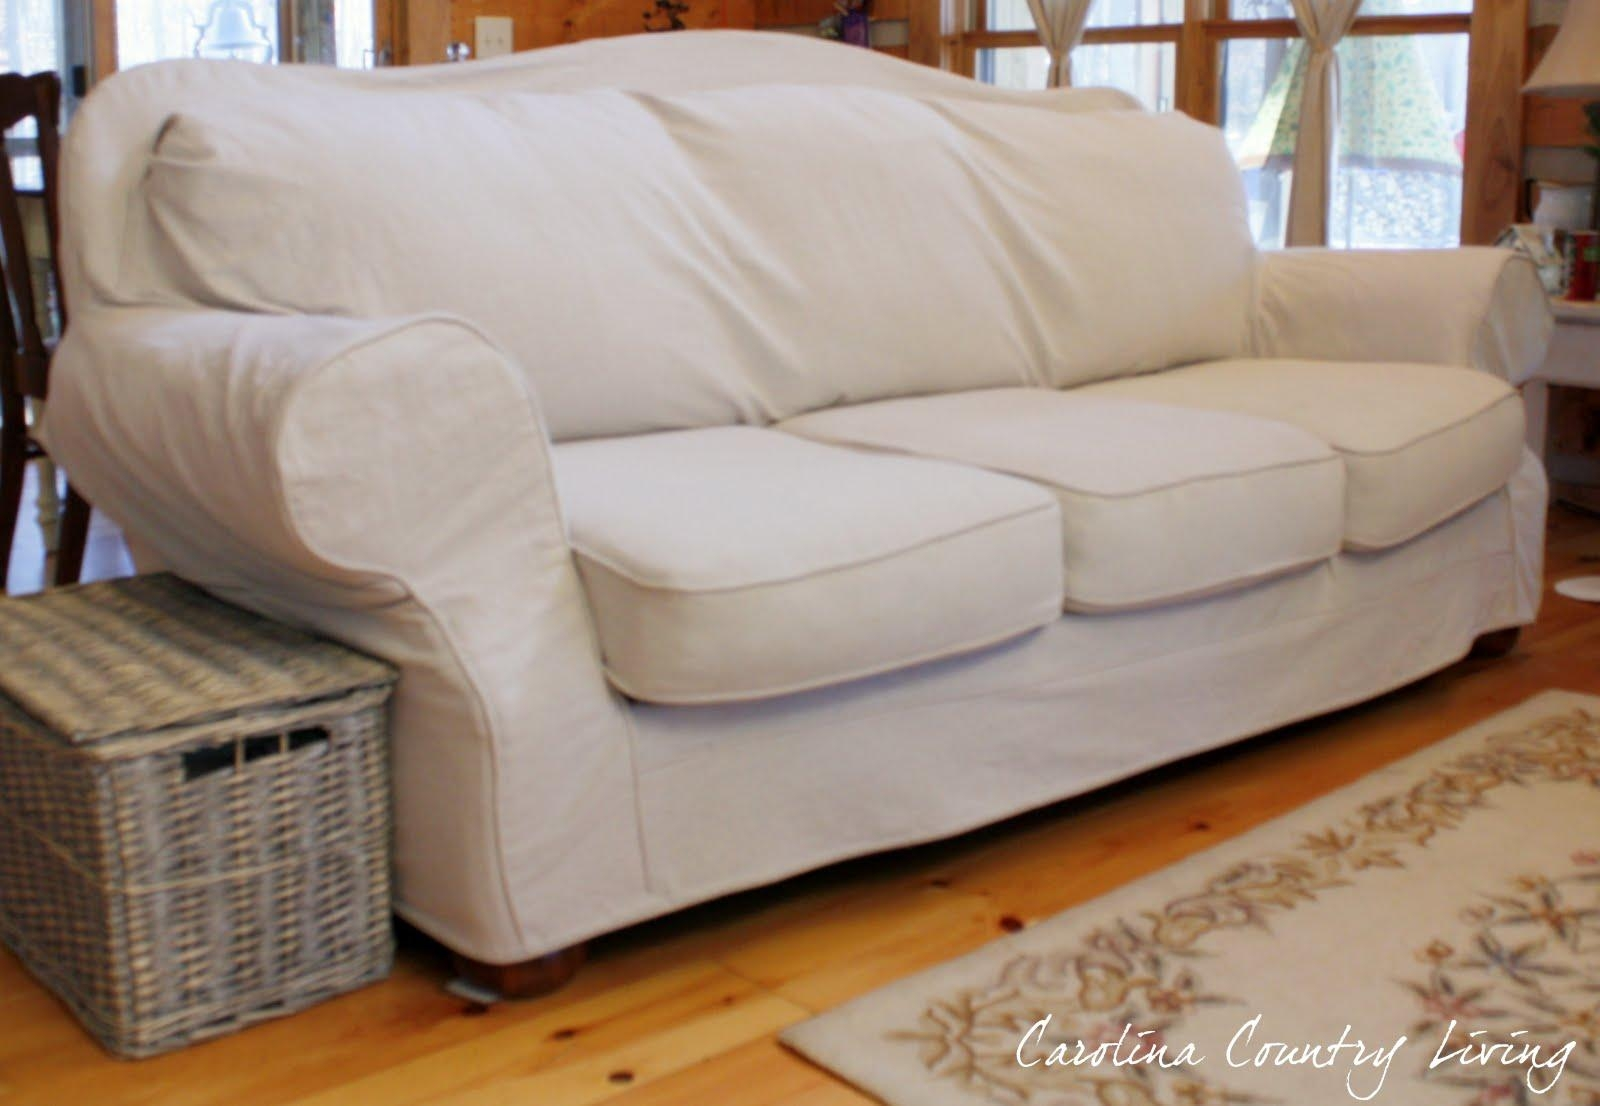 2019 Latest Camel Back Couch Slipcovers Sofa Ideas